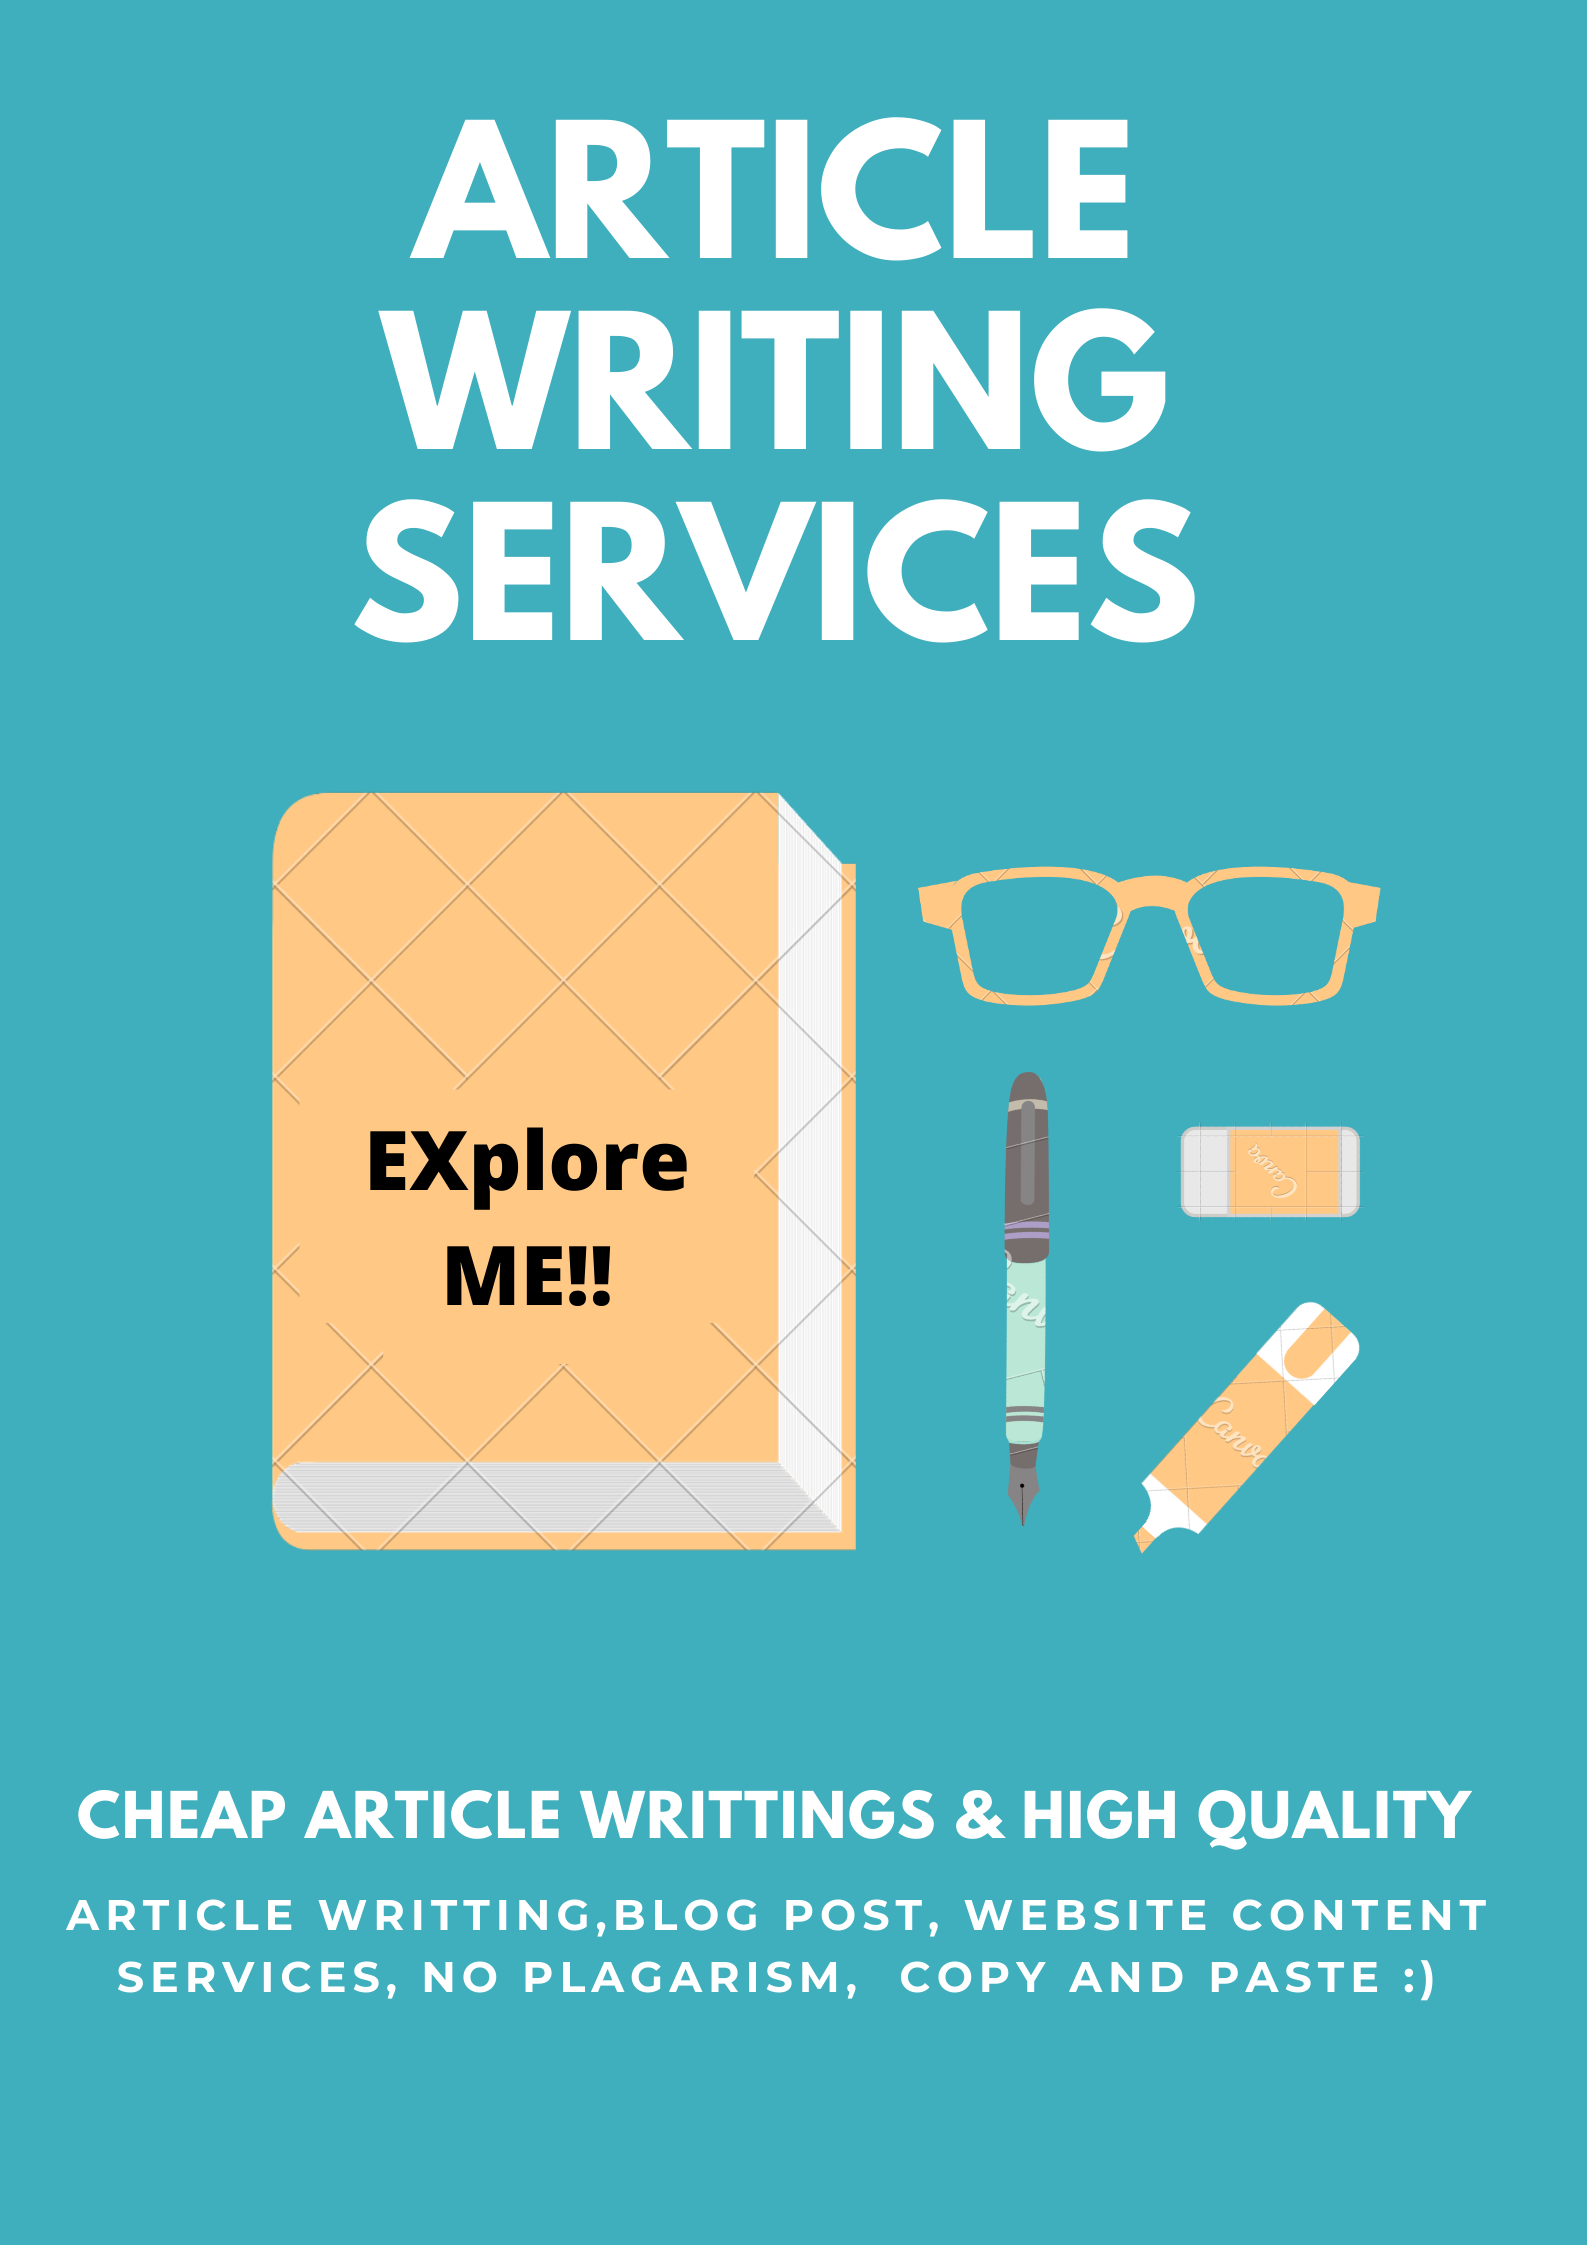 I will write 600-800 words engaging article or post for your website or blog.